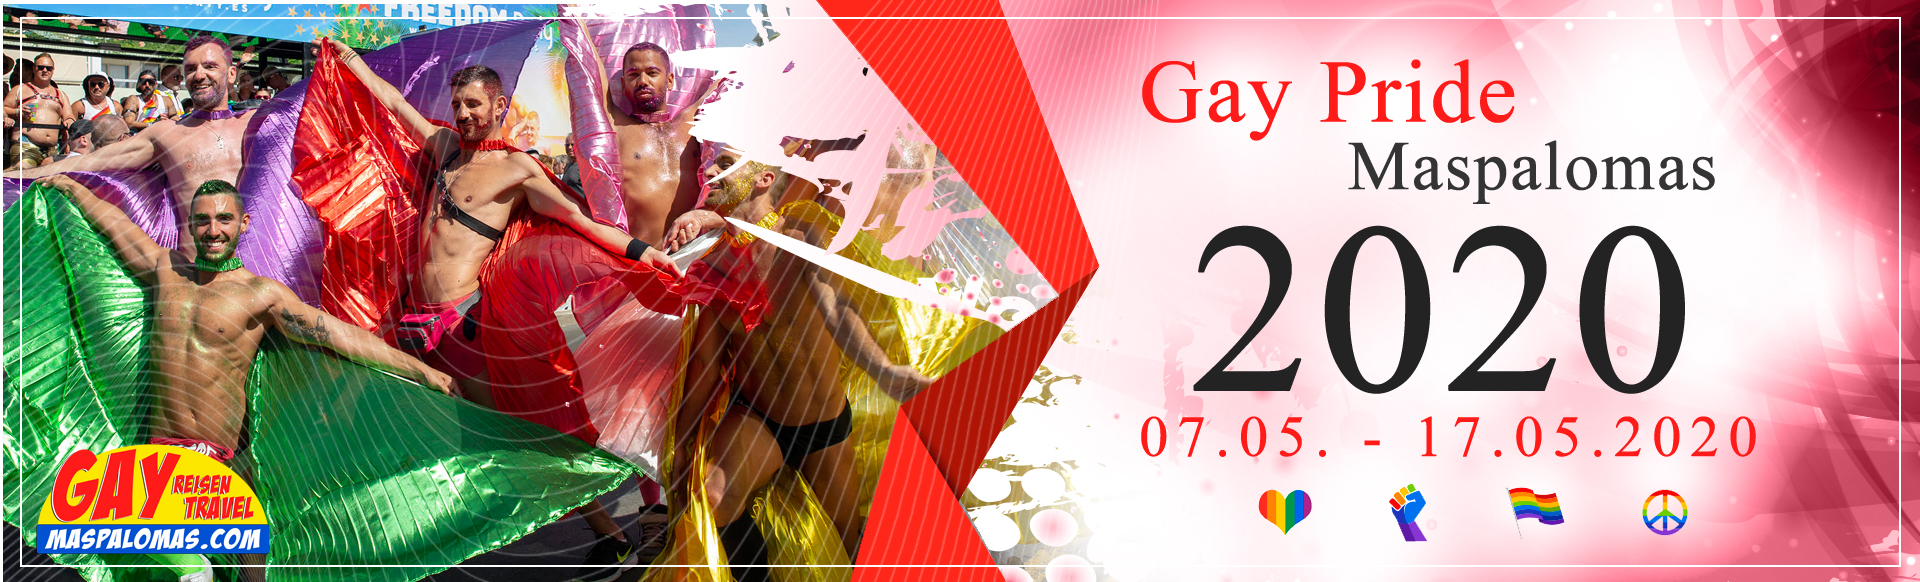 Top LGBT events in the Canary Islands for 12222